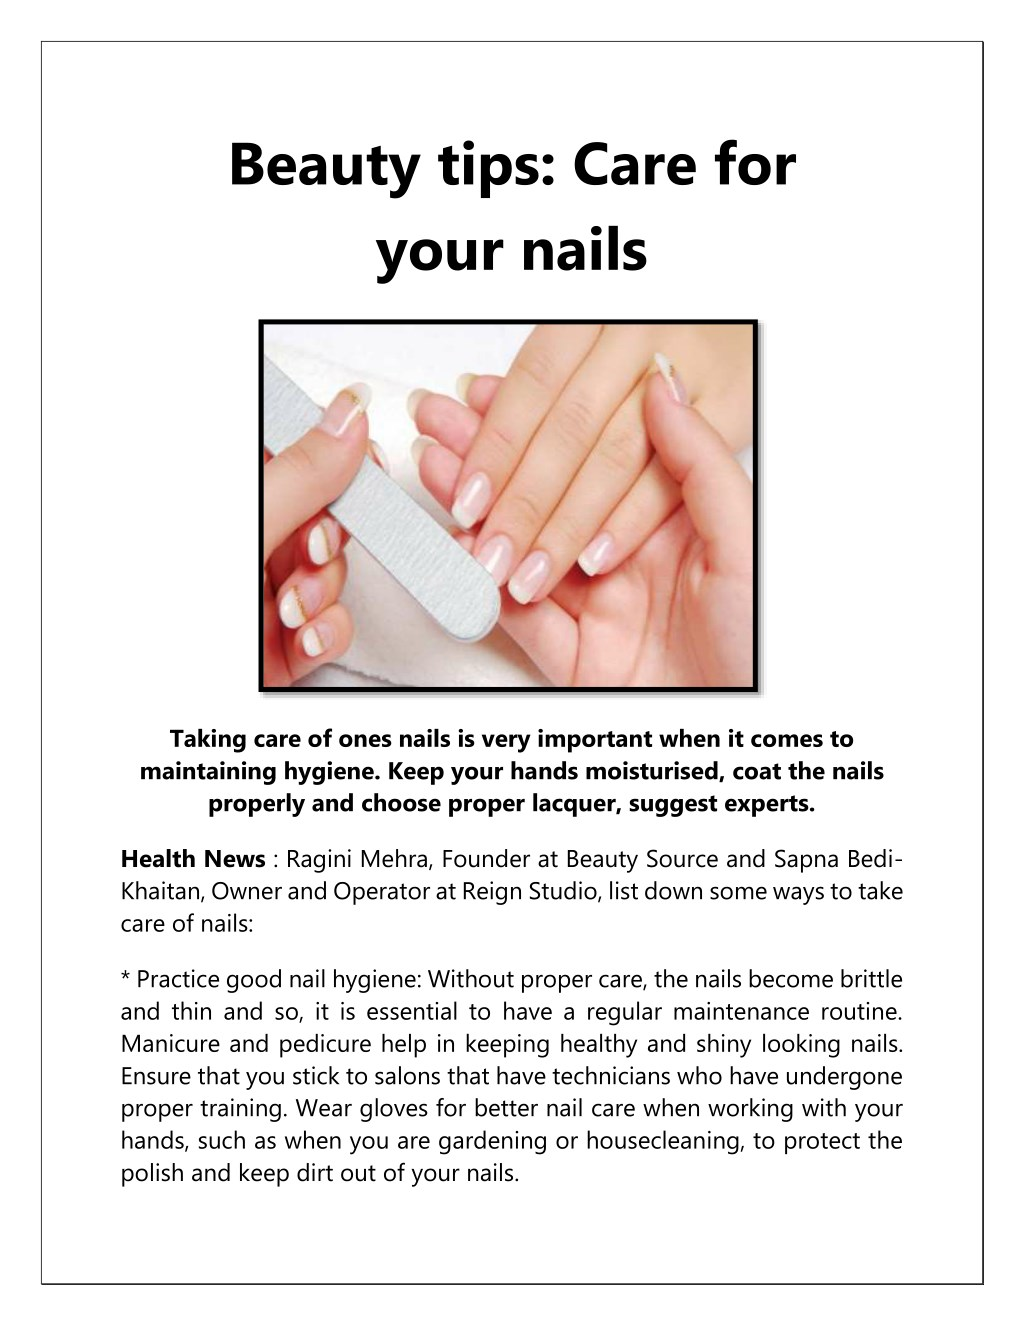 PPT - Beauty Tips Care for Your Nails PowerPoint Presentation